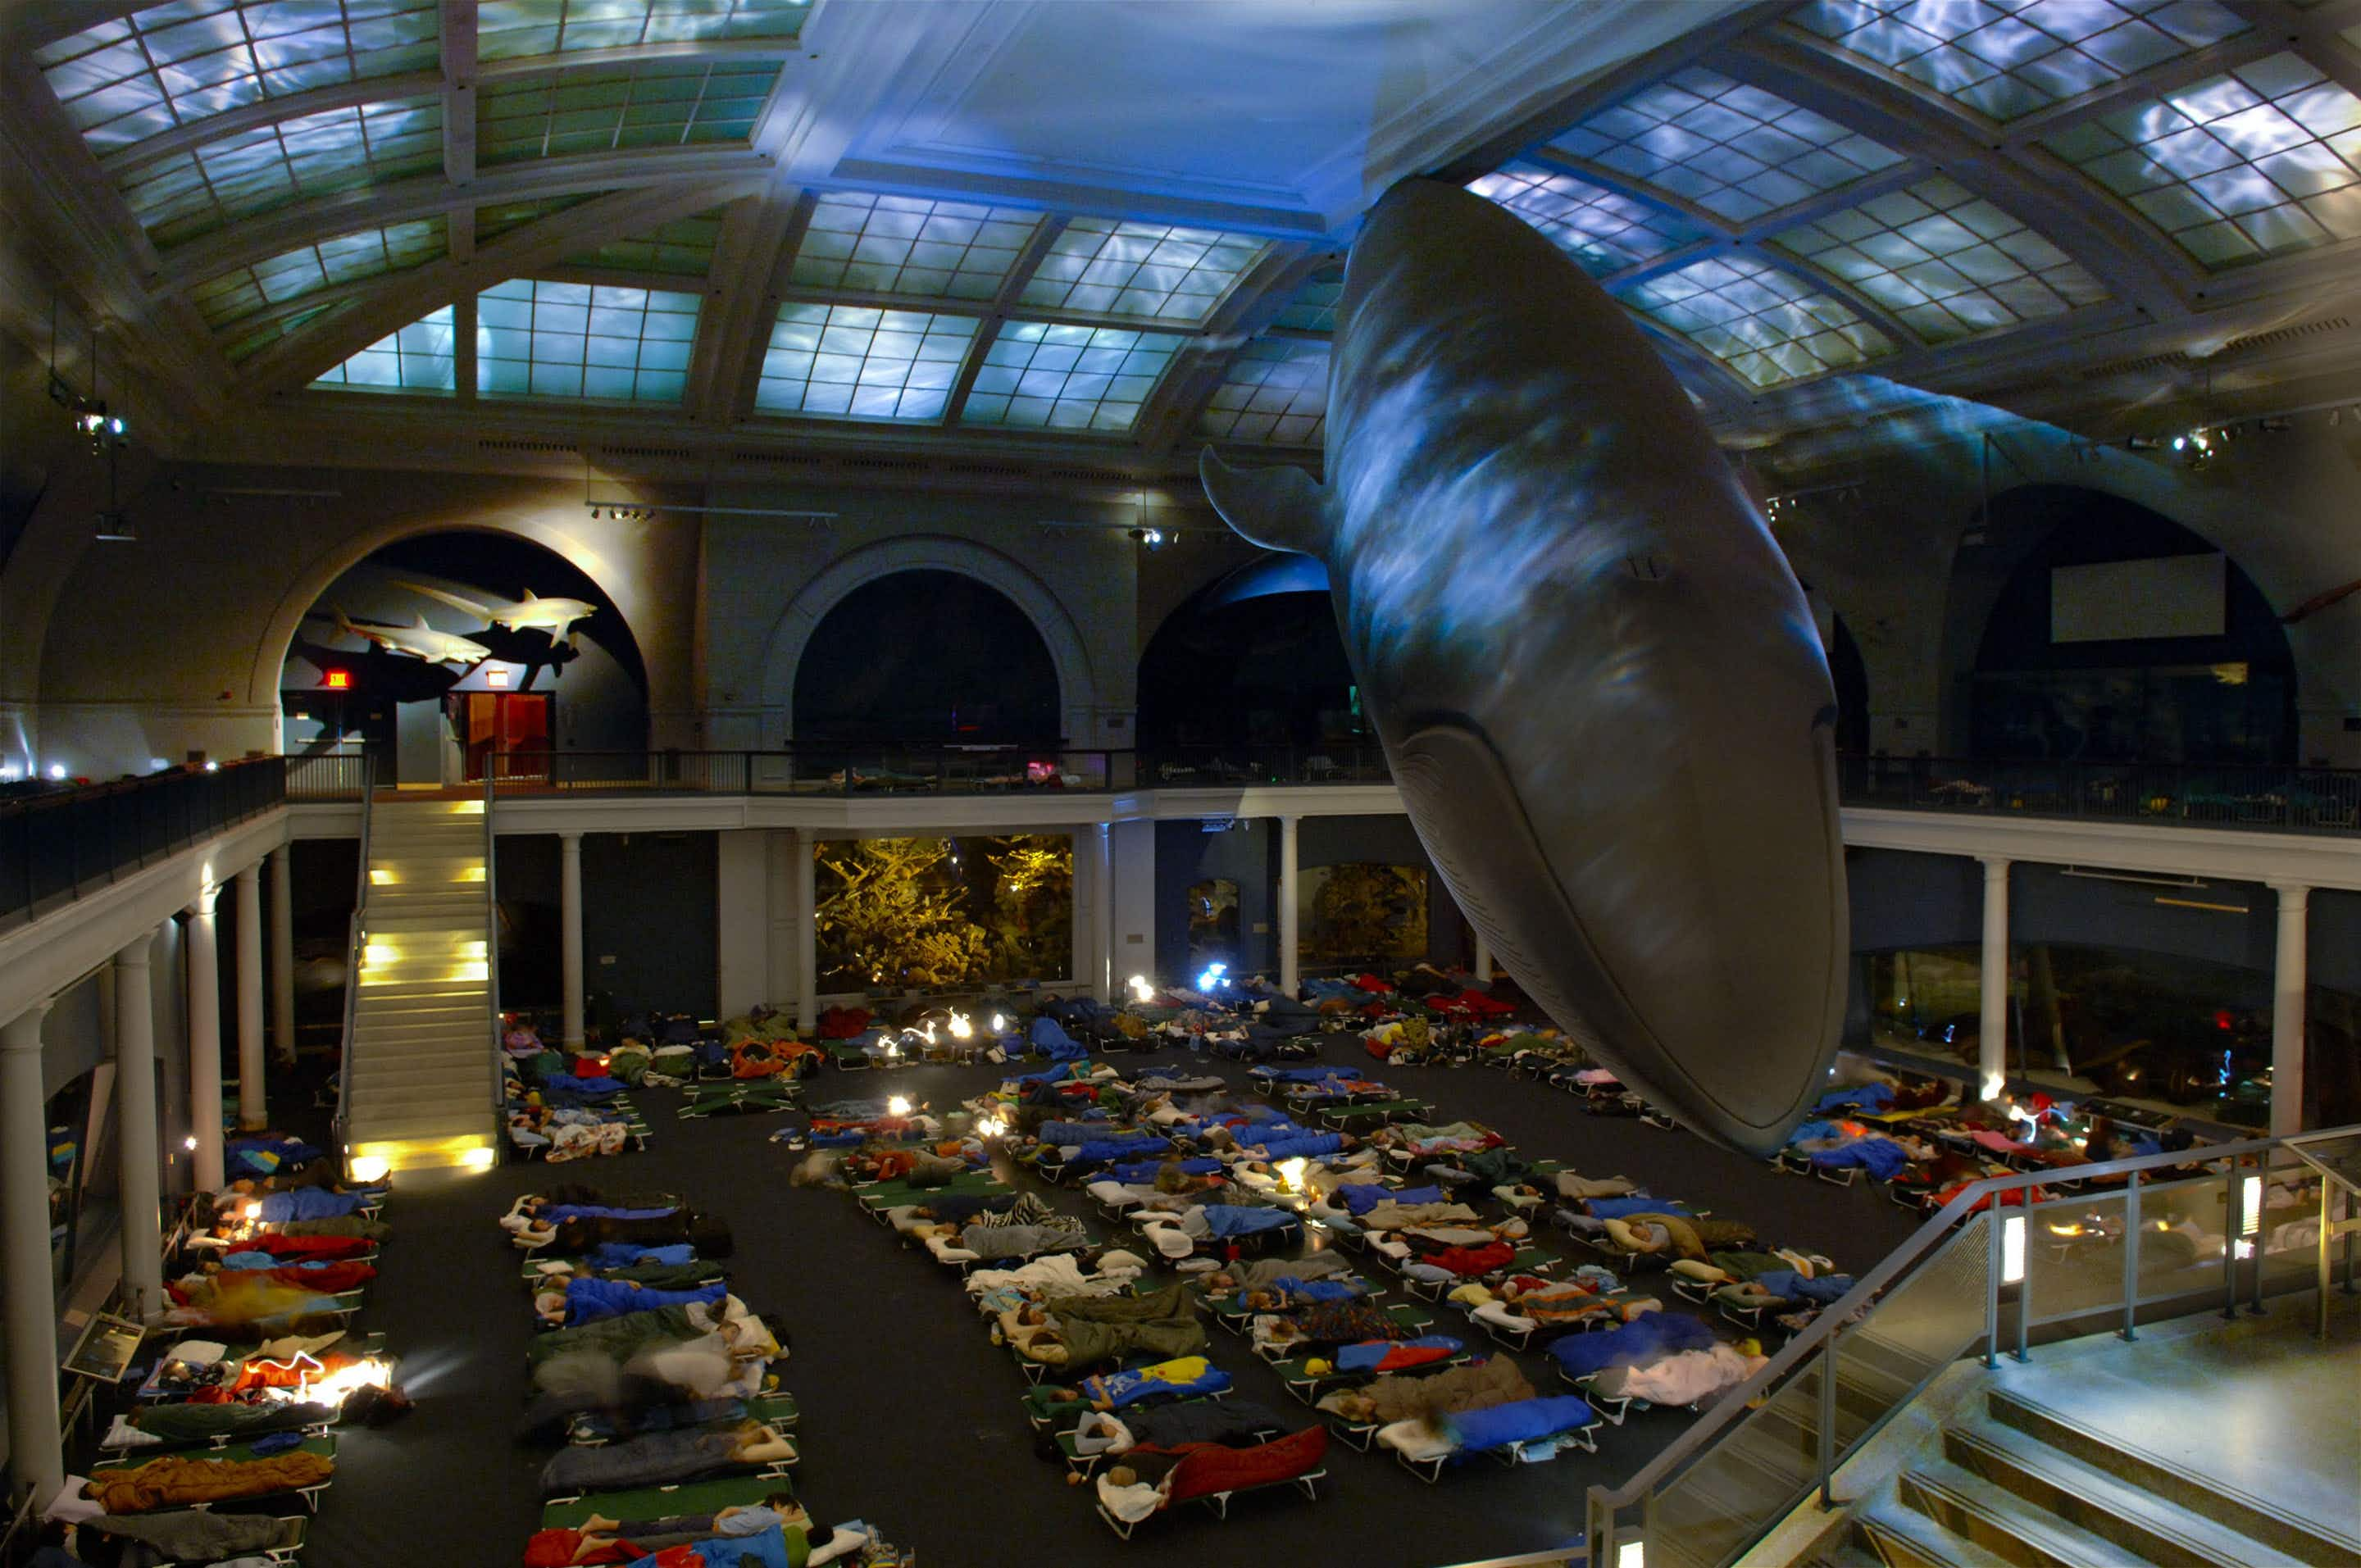 Spend a night at the American Museum of Natural History in New York